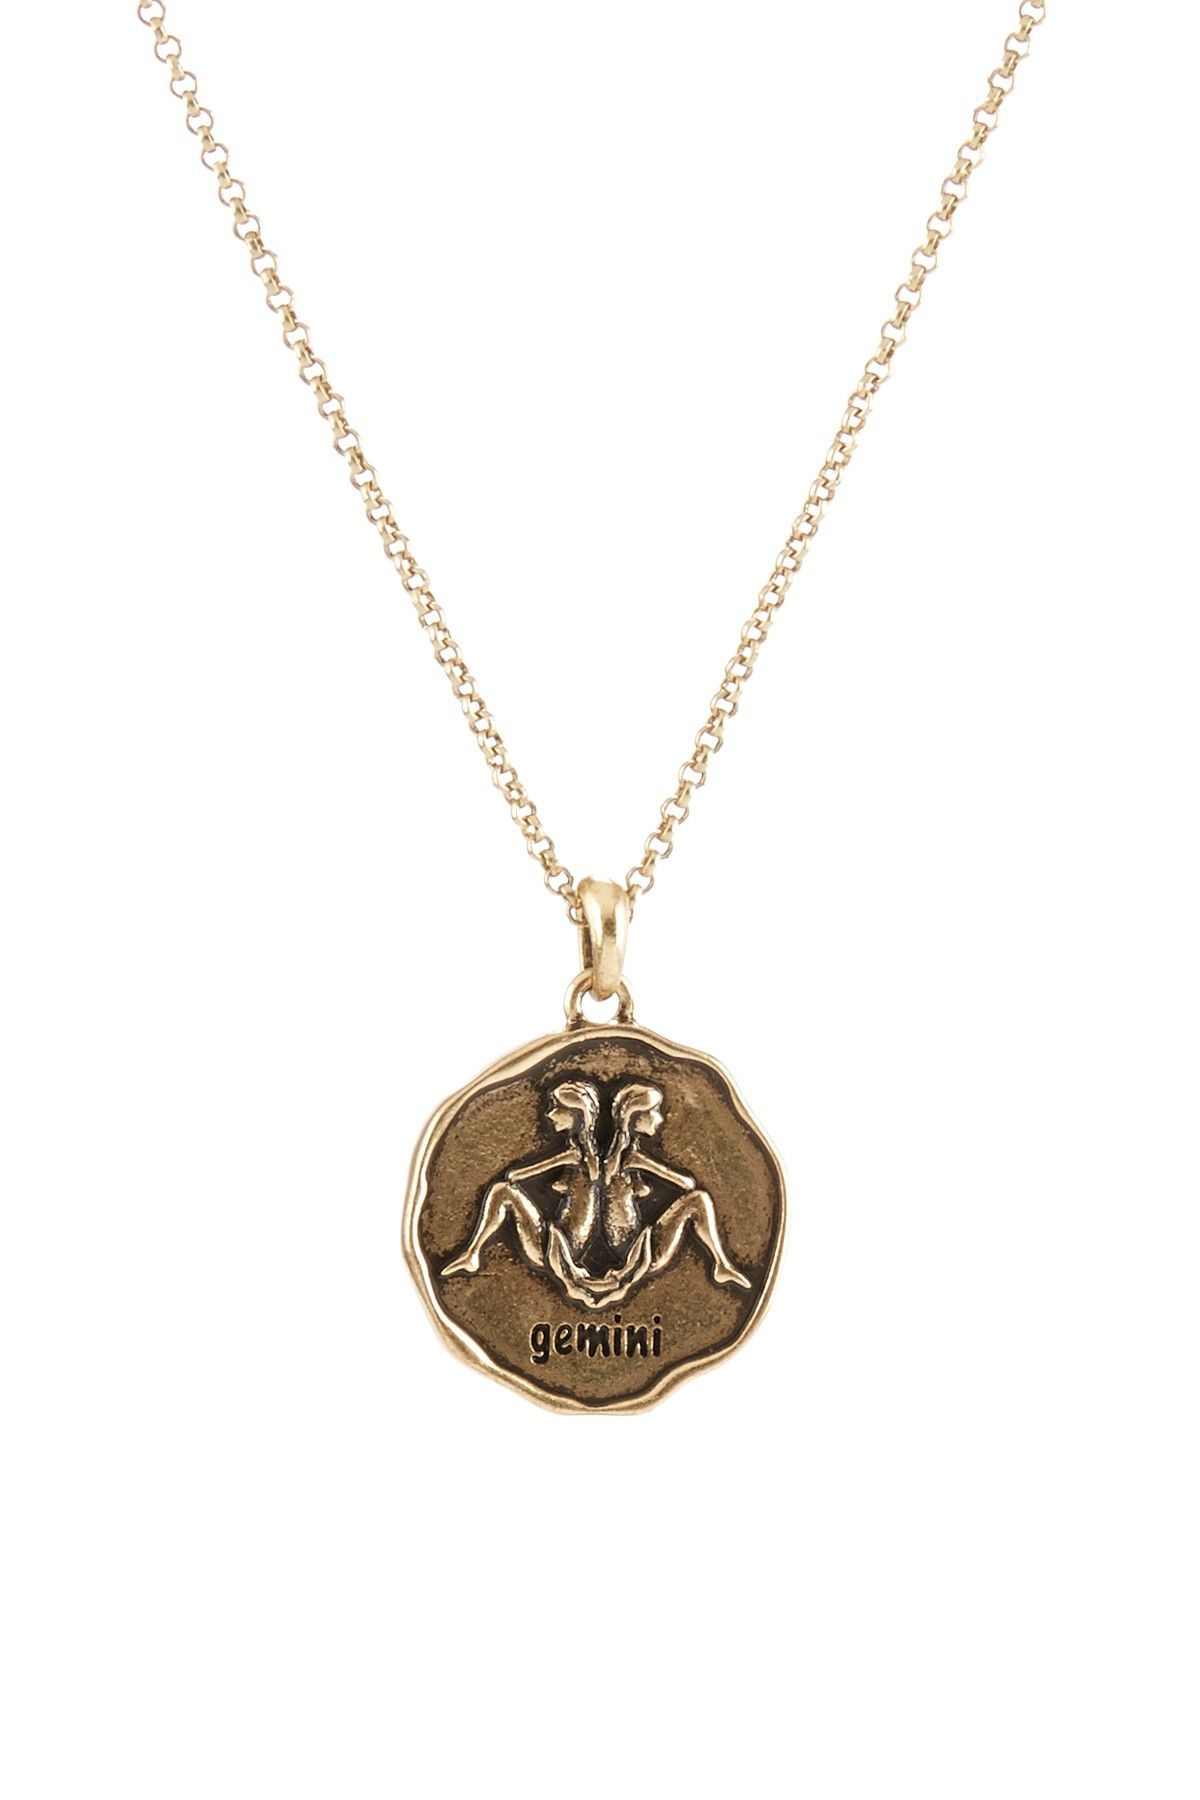 Zodiac gemini pendant necklace gemini lucky brand and nordstrom